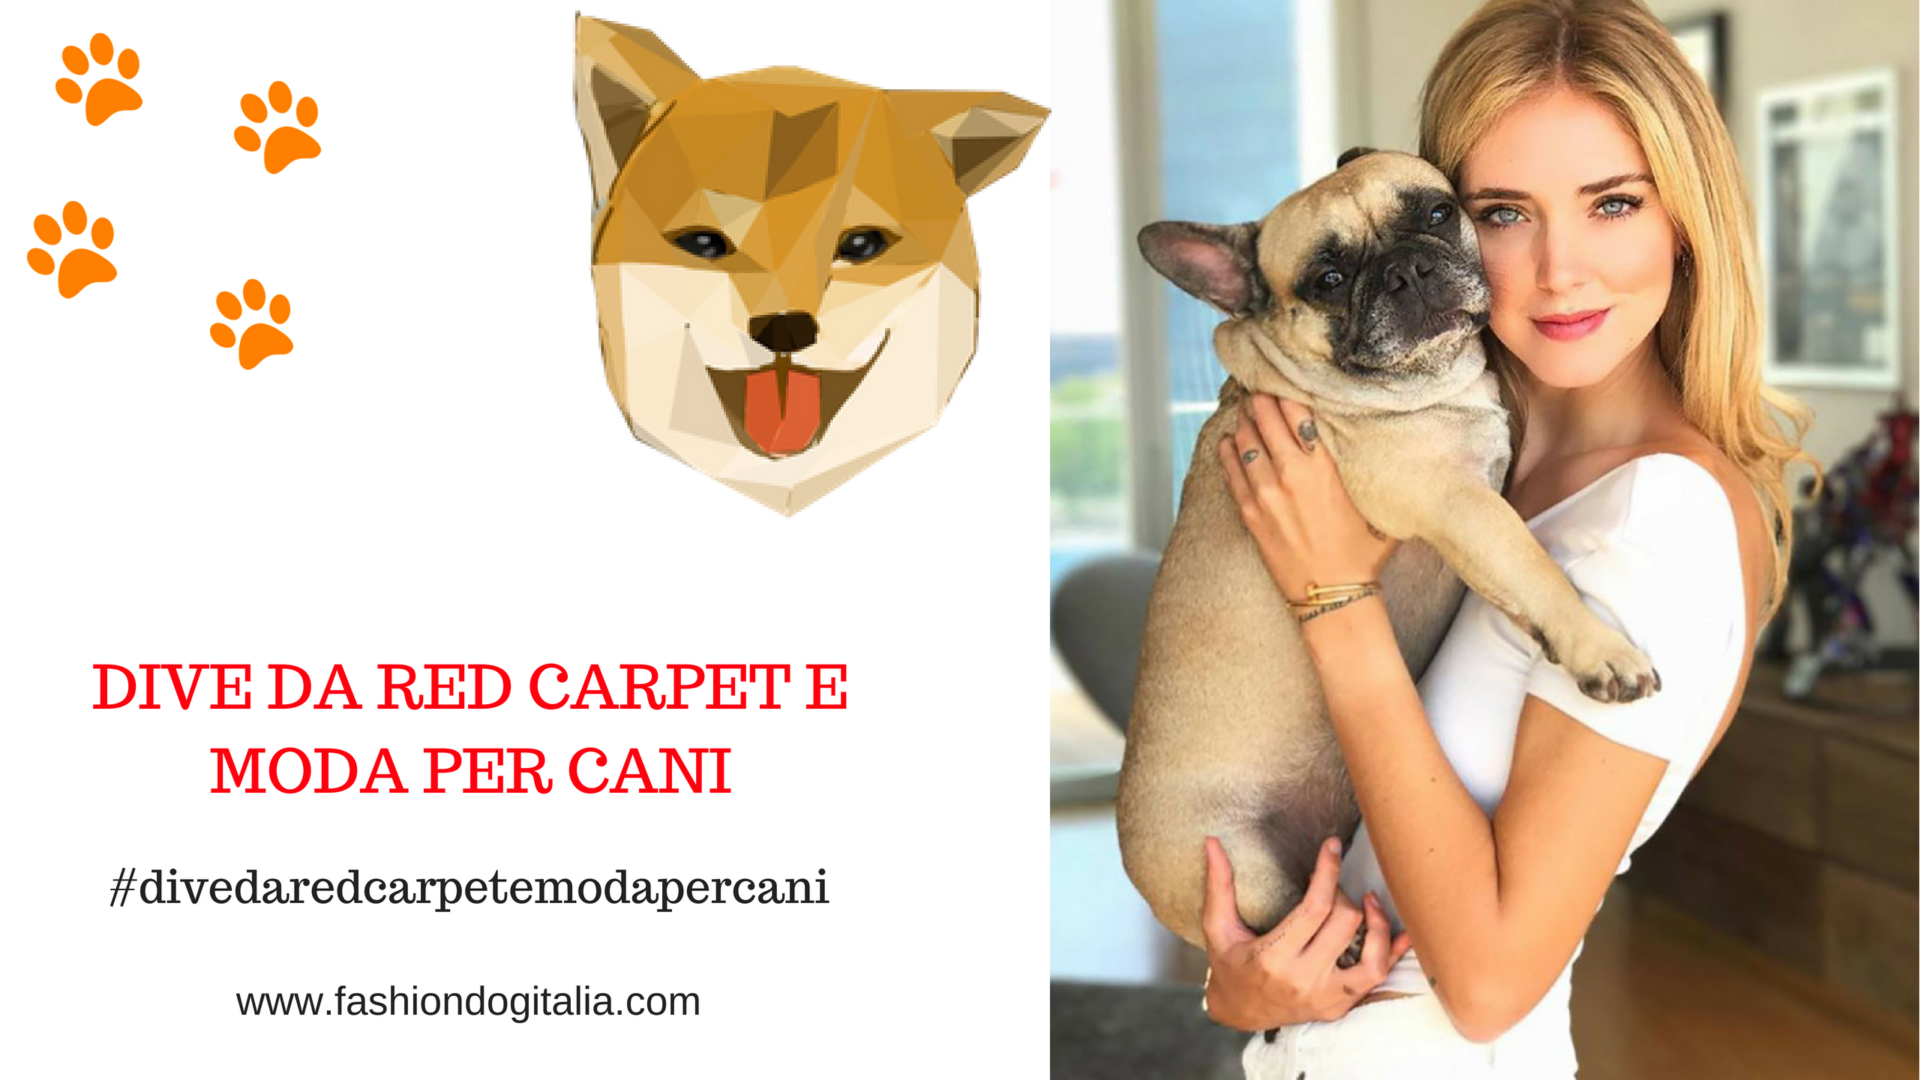 le dive da red carpet e moda per cani